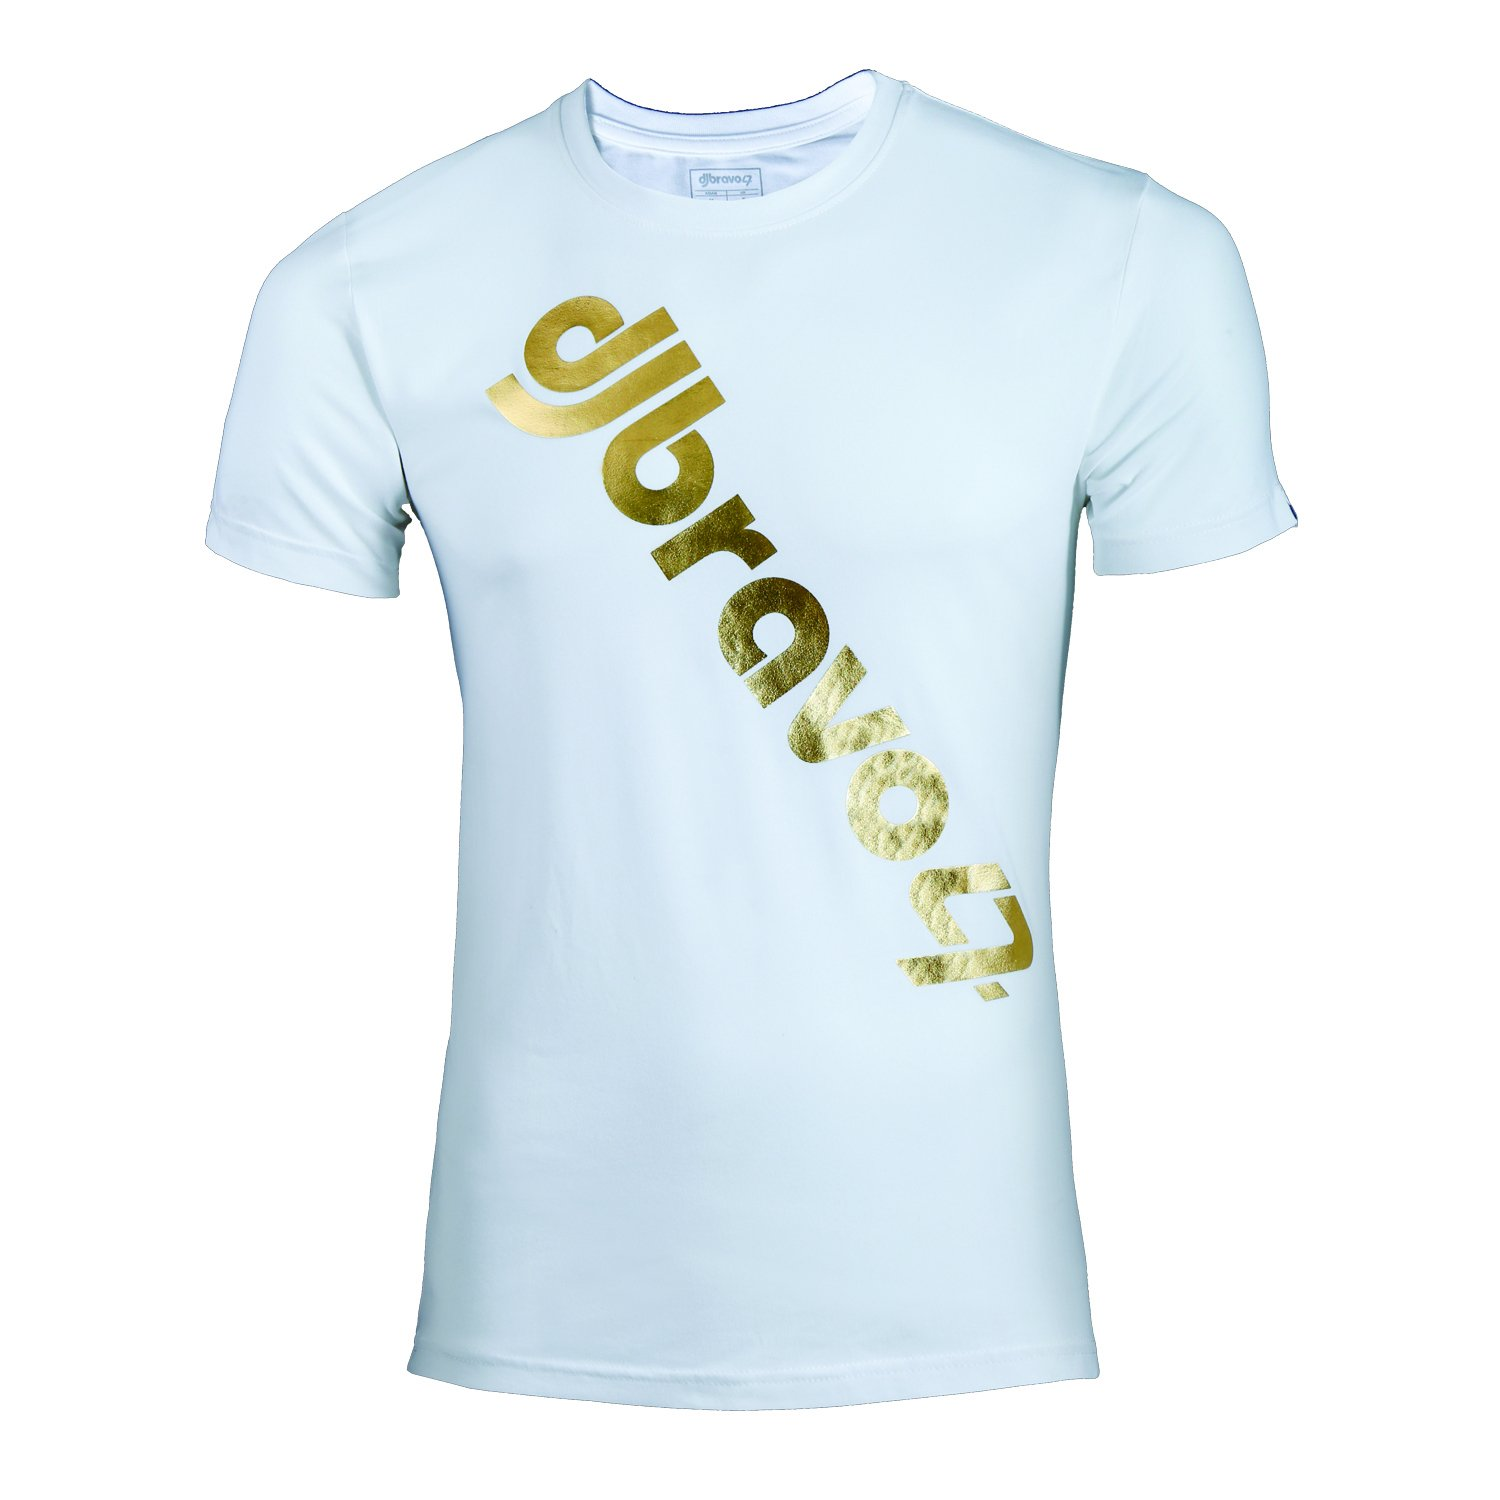 a64566b07 Amazon.com: djbravo47 Men's TShirt Men's Logo round neck Slim fit Half  sleeve T shirt White with Gold: Clothing